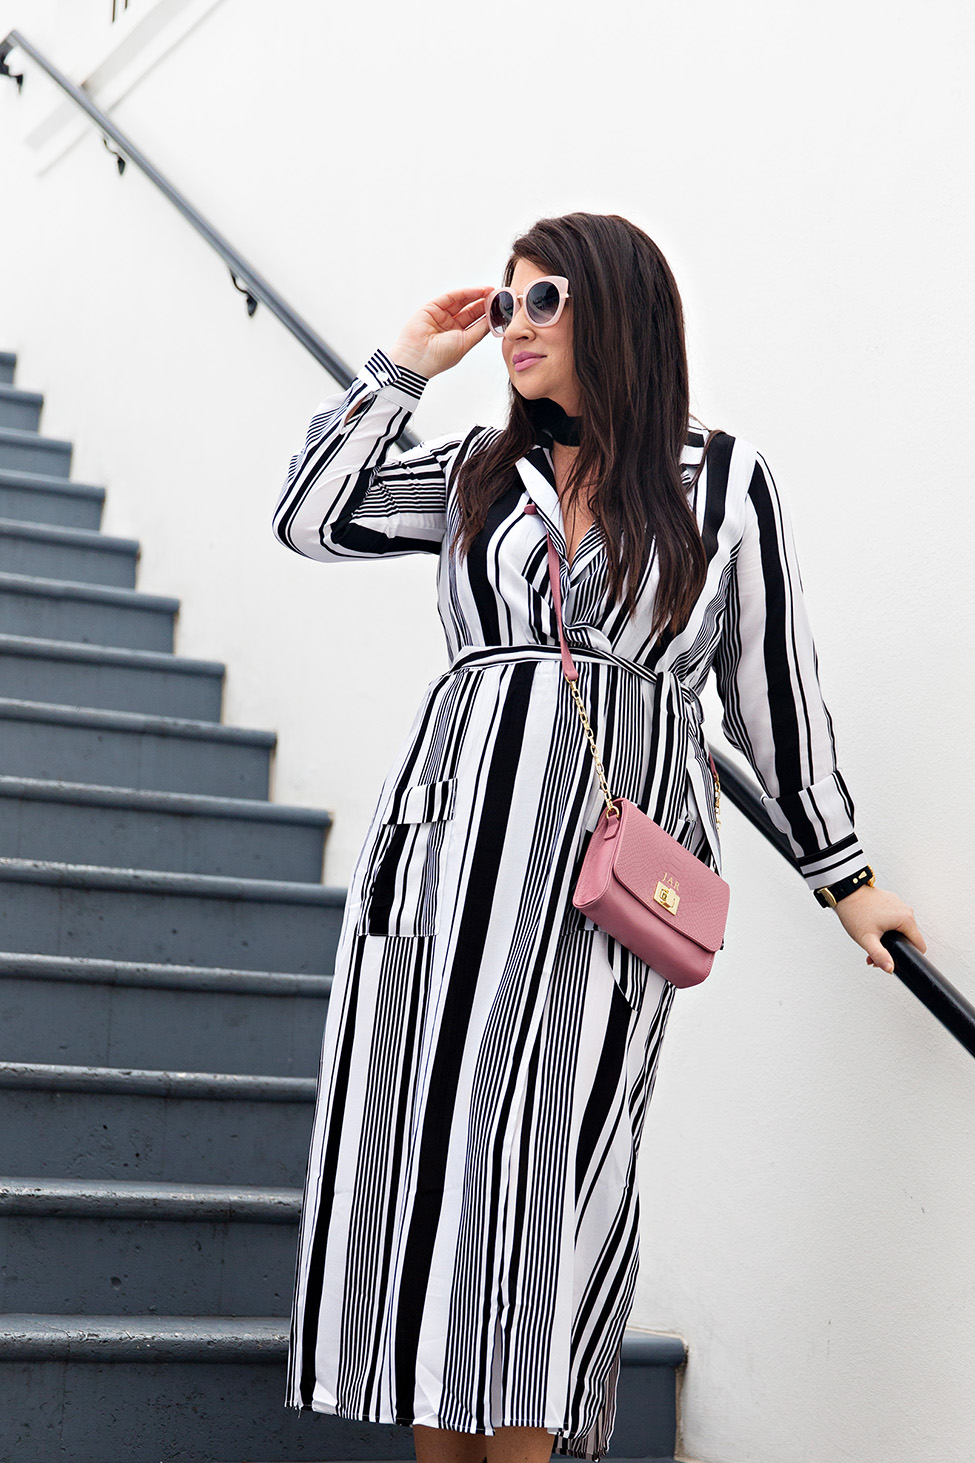 30A Street Style Jami Ray The Pearl Rosemary Beach Black and White Stripes 2